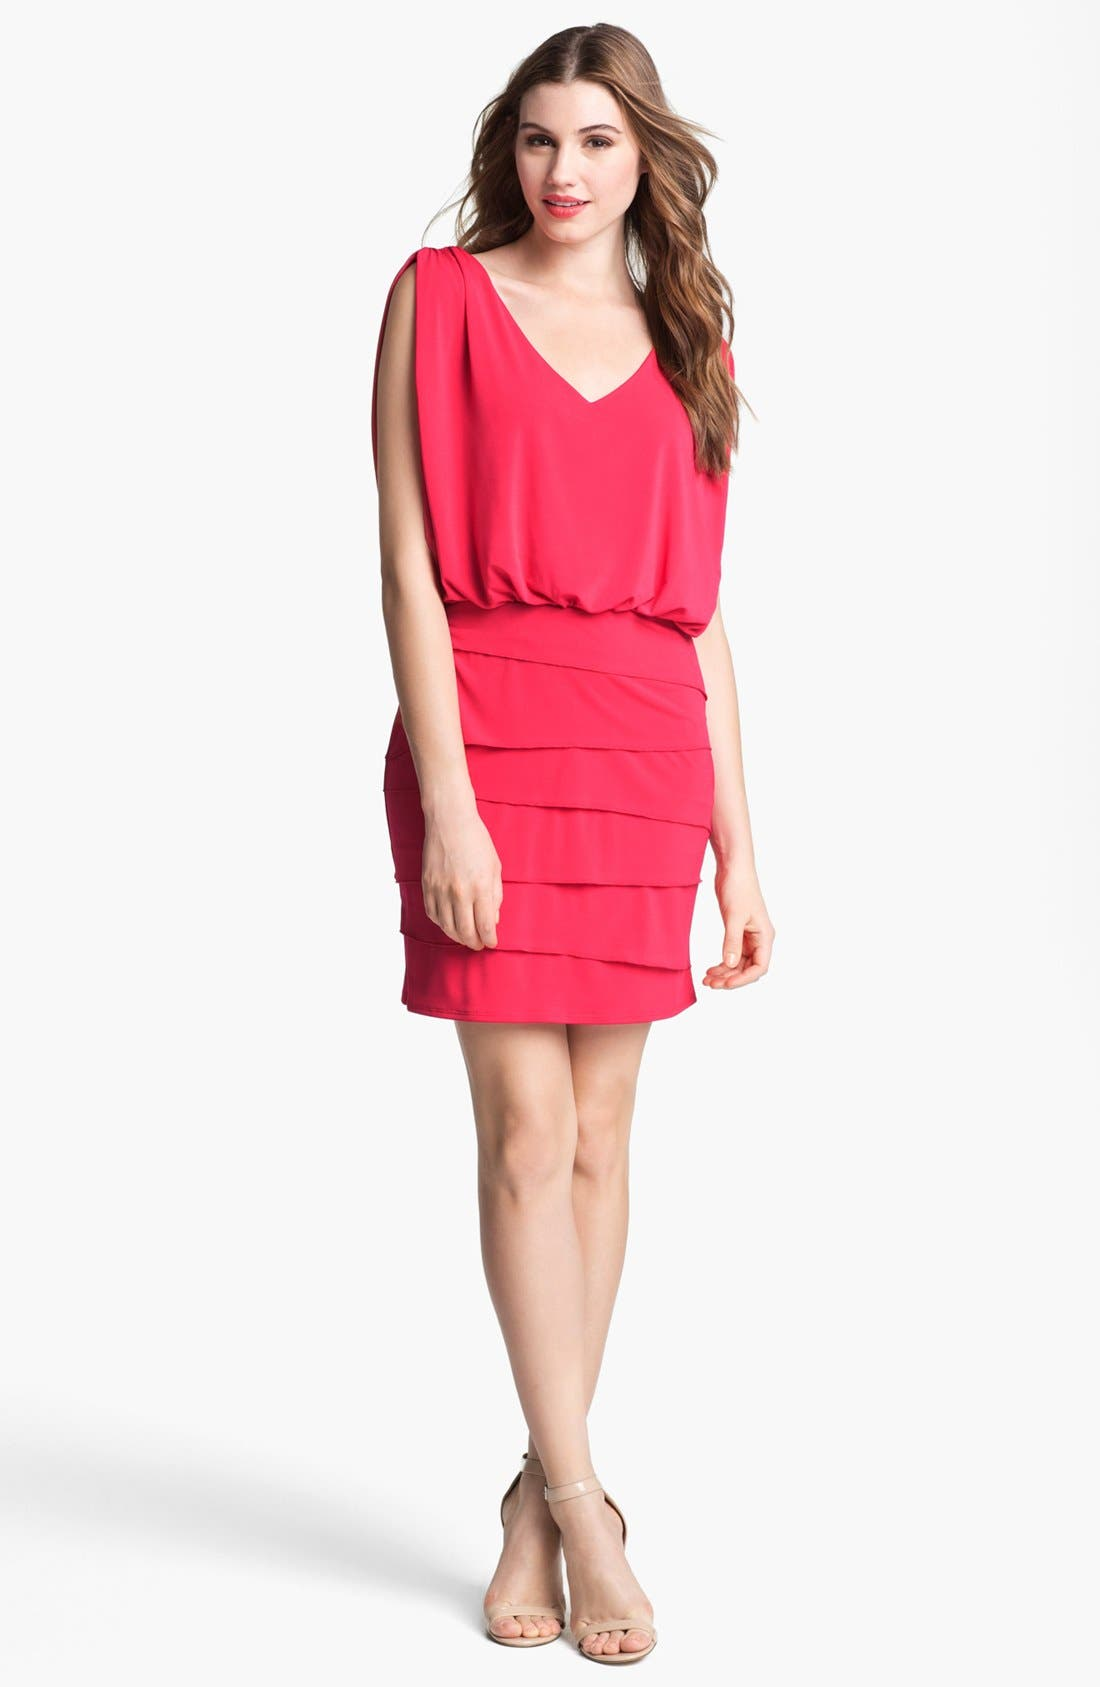 Alternate Image 1 Selected - Laundry by Shelli Segal Tiered Skirt Dress